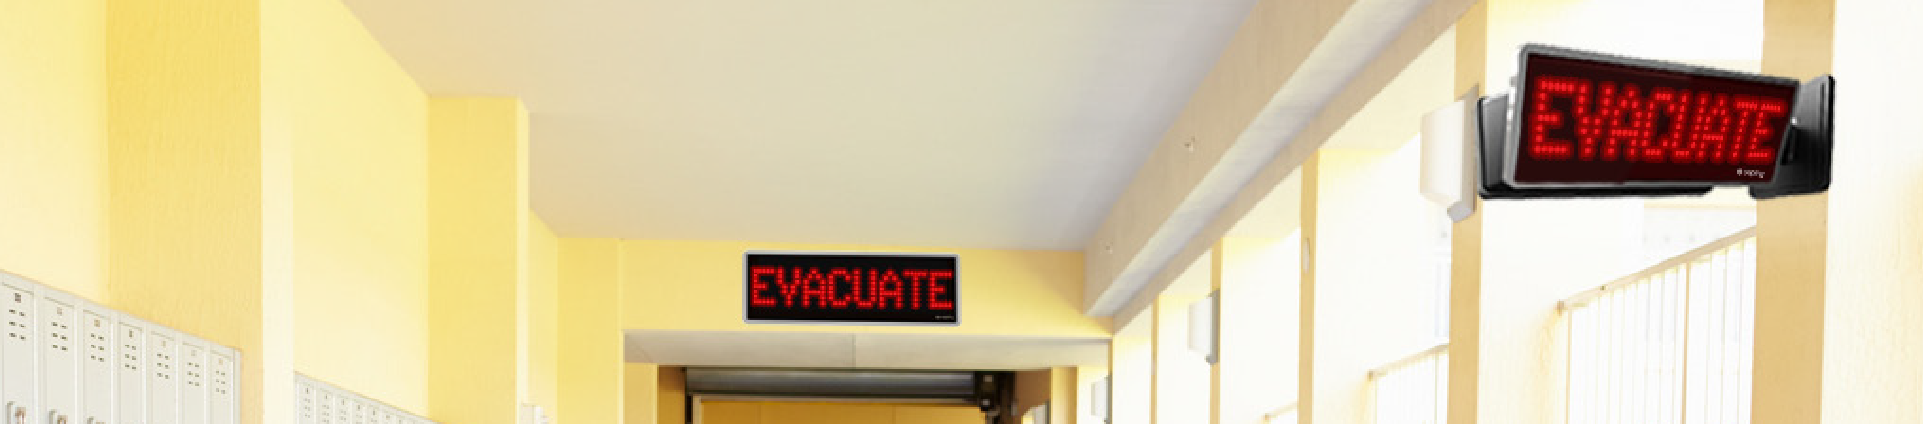 During Time of Crisis - You need Mass Notification Across Your Facility